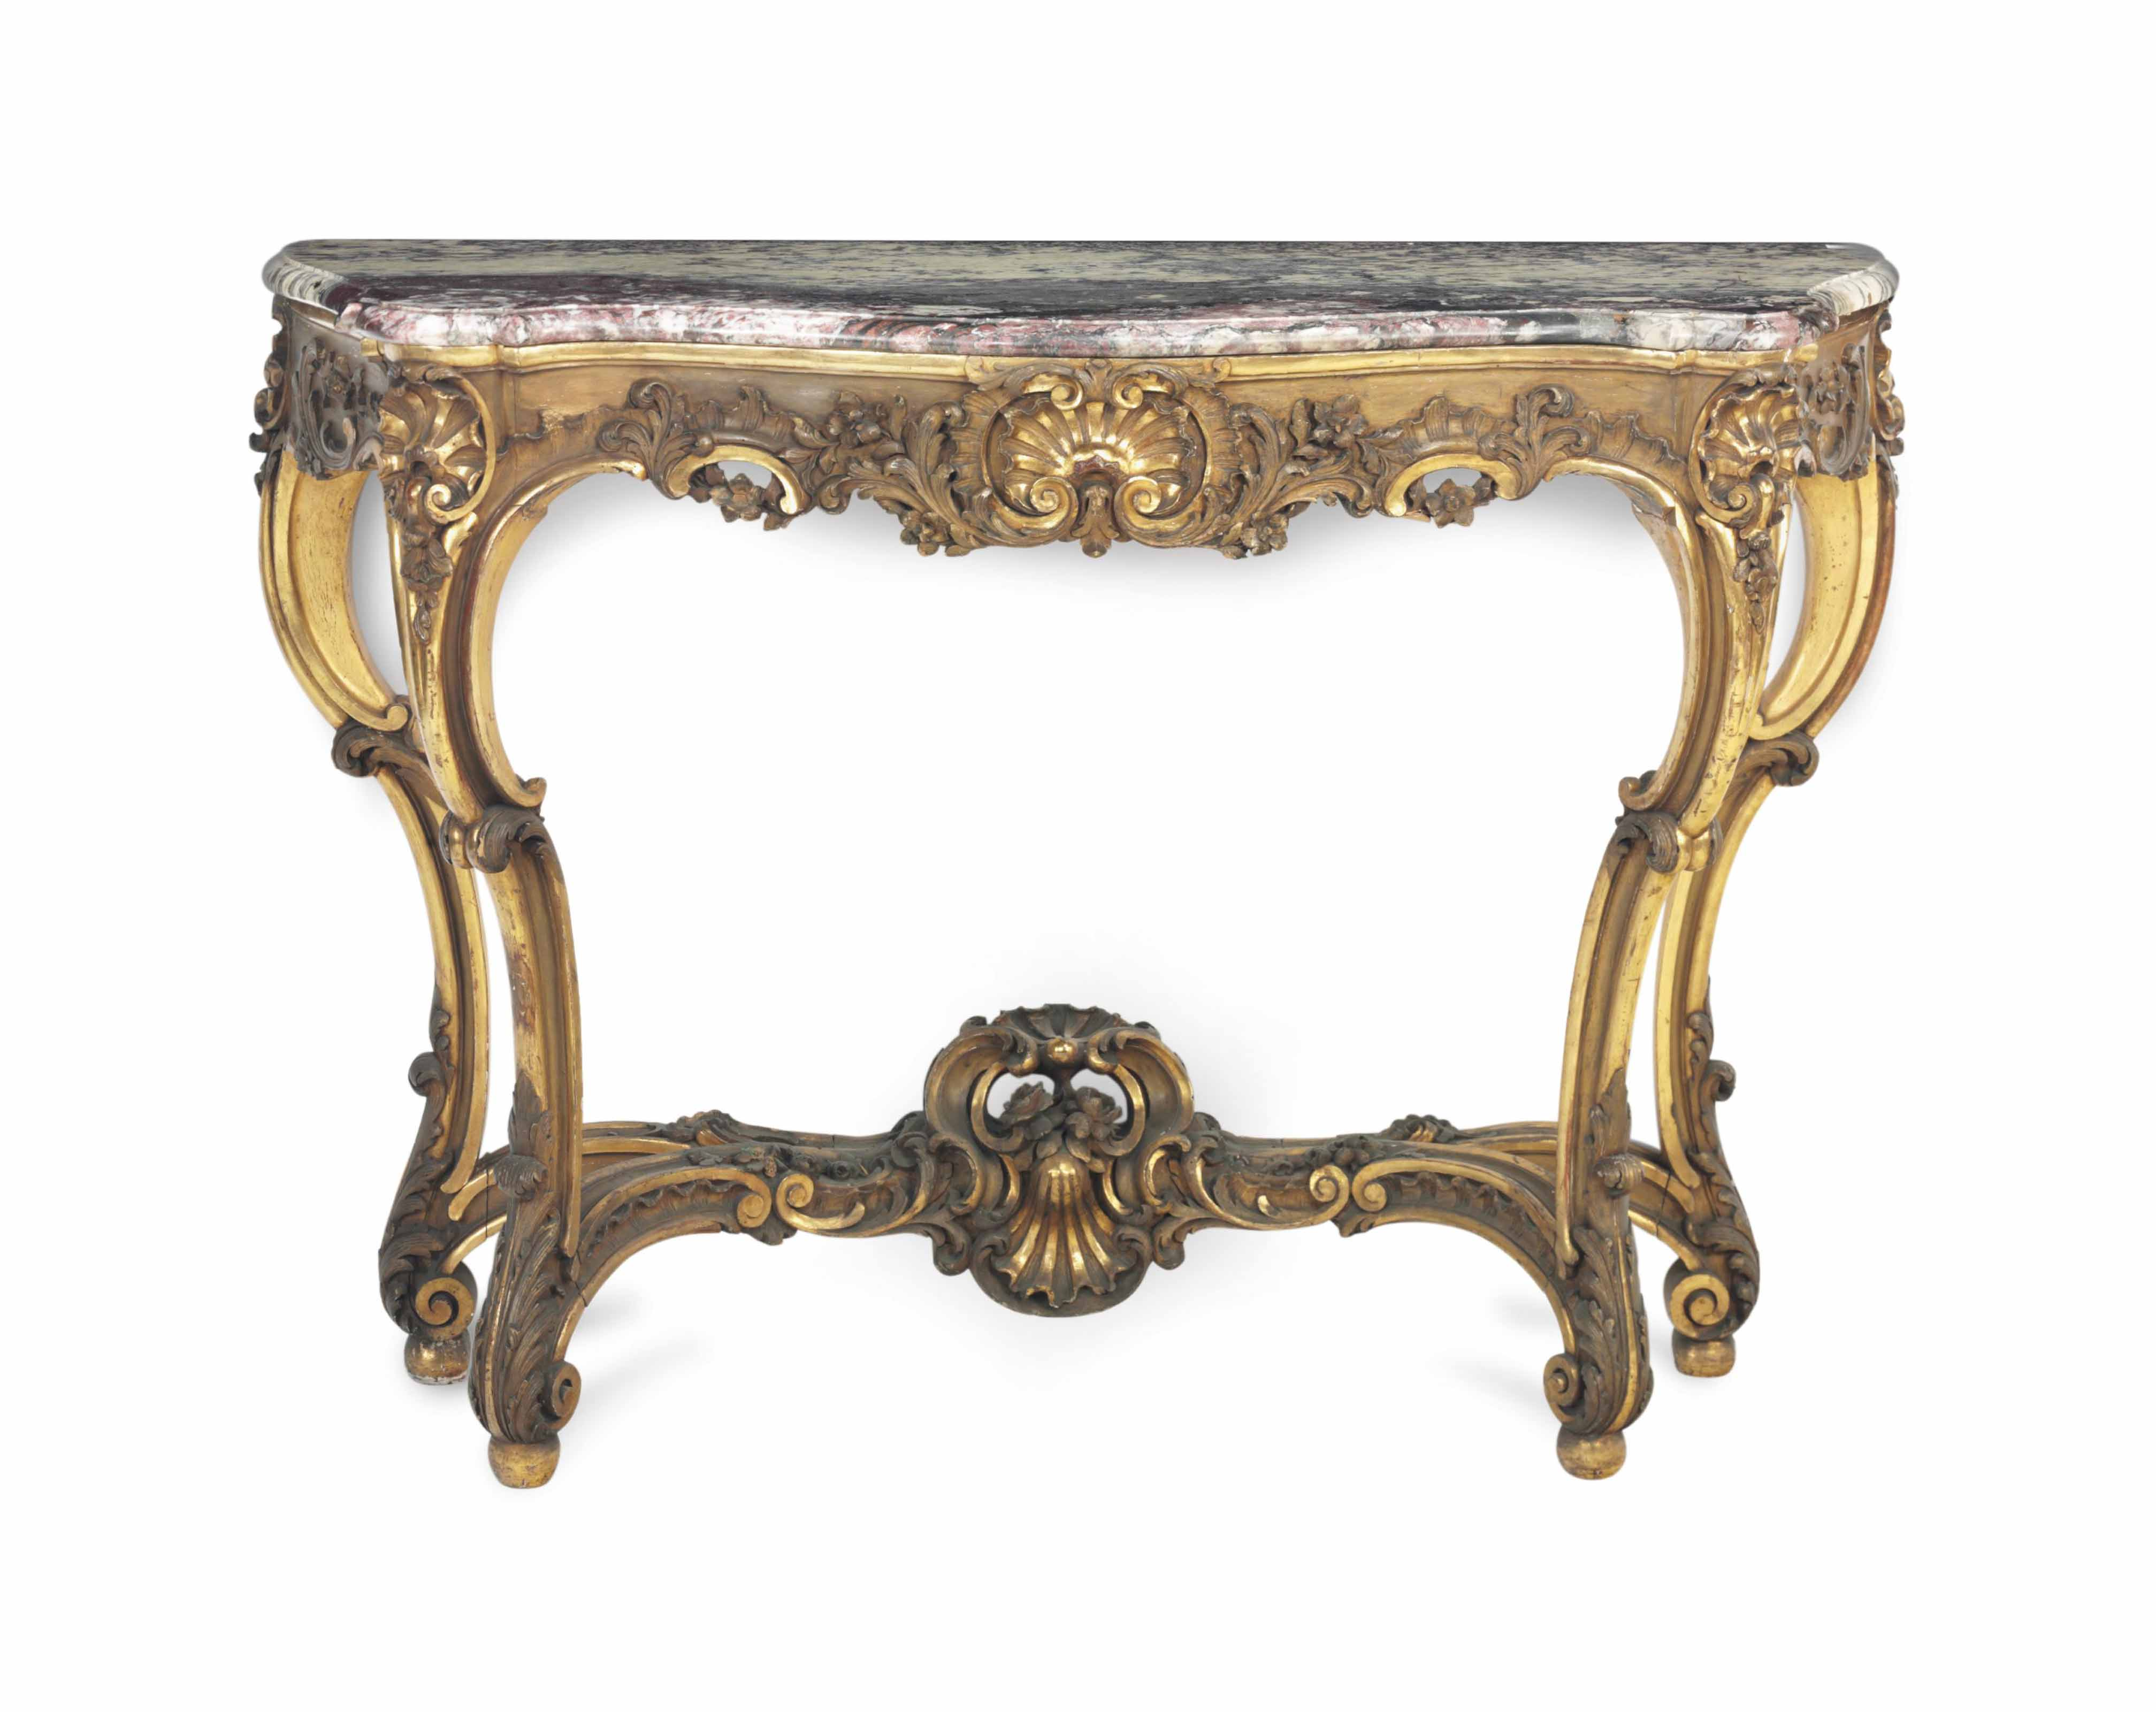 A LOUIS XV STYLE GILTWOOD AND MARBLE TOP CONSOLE TABLE